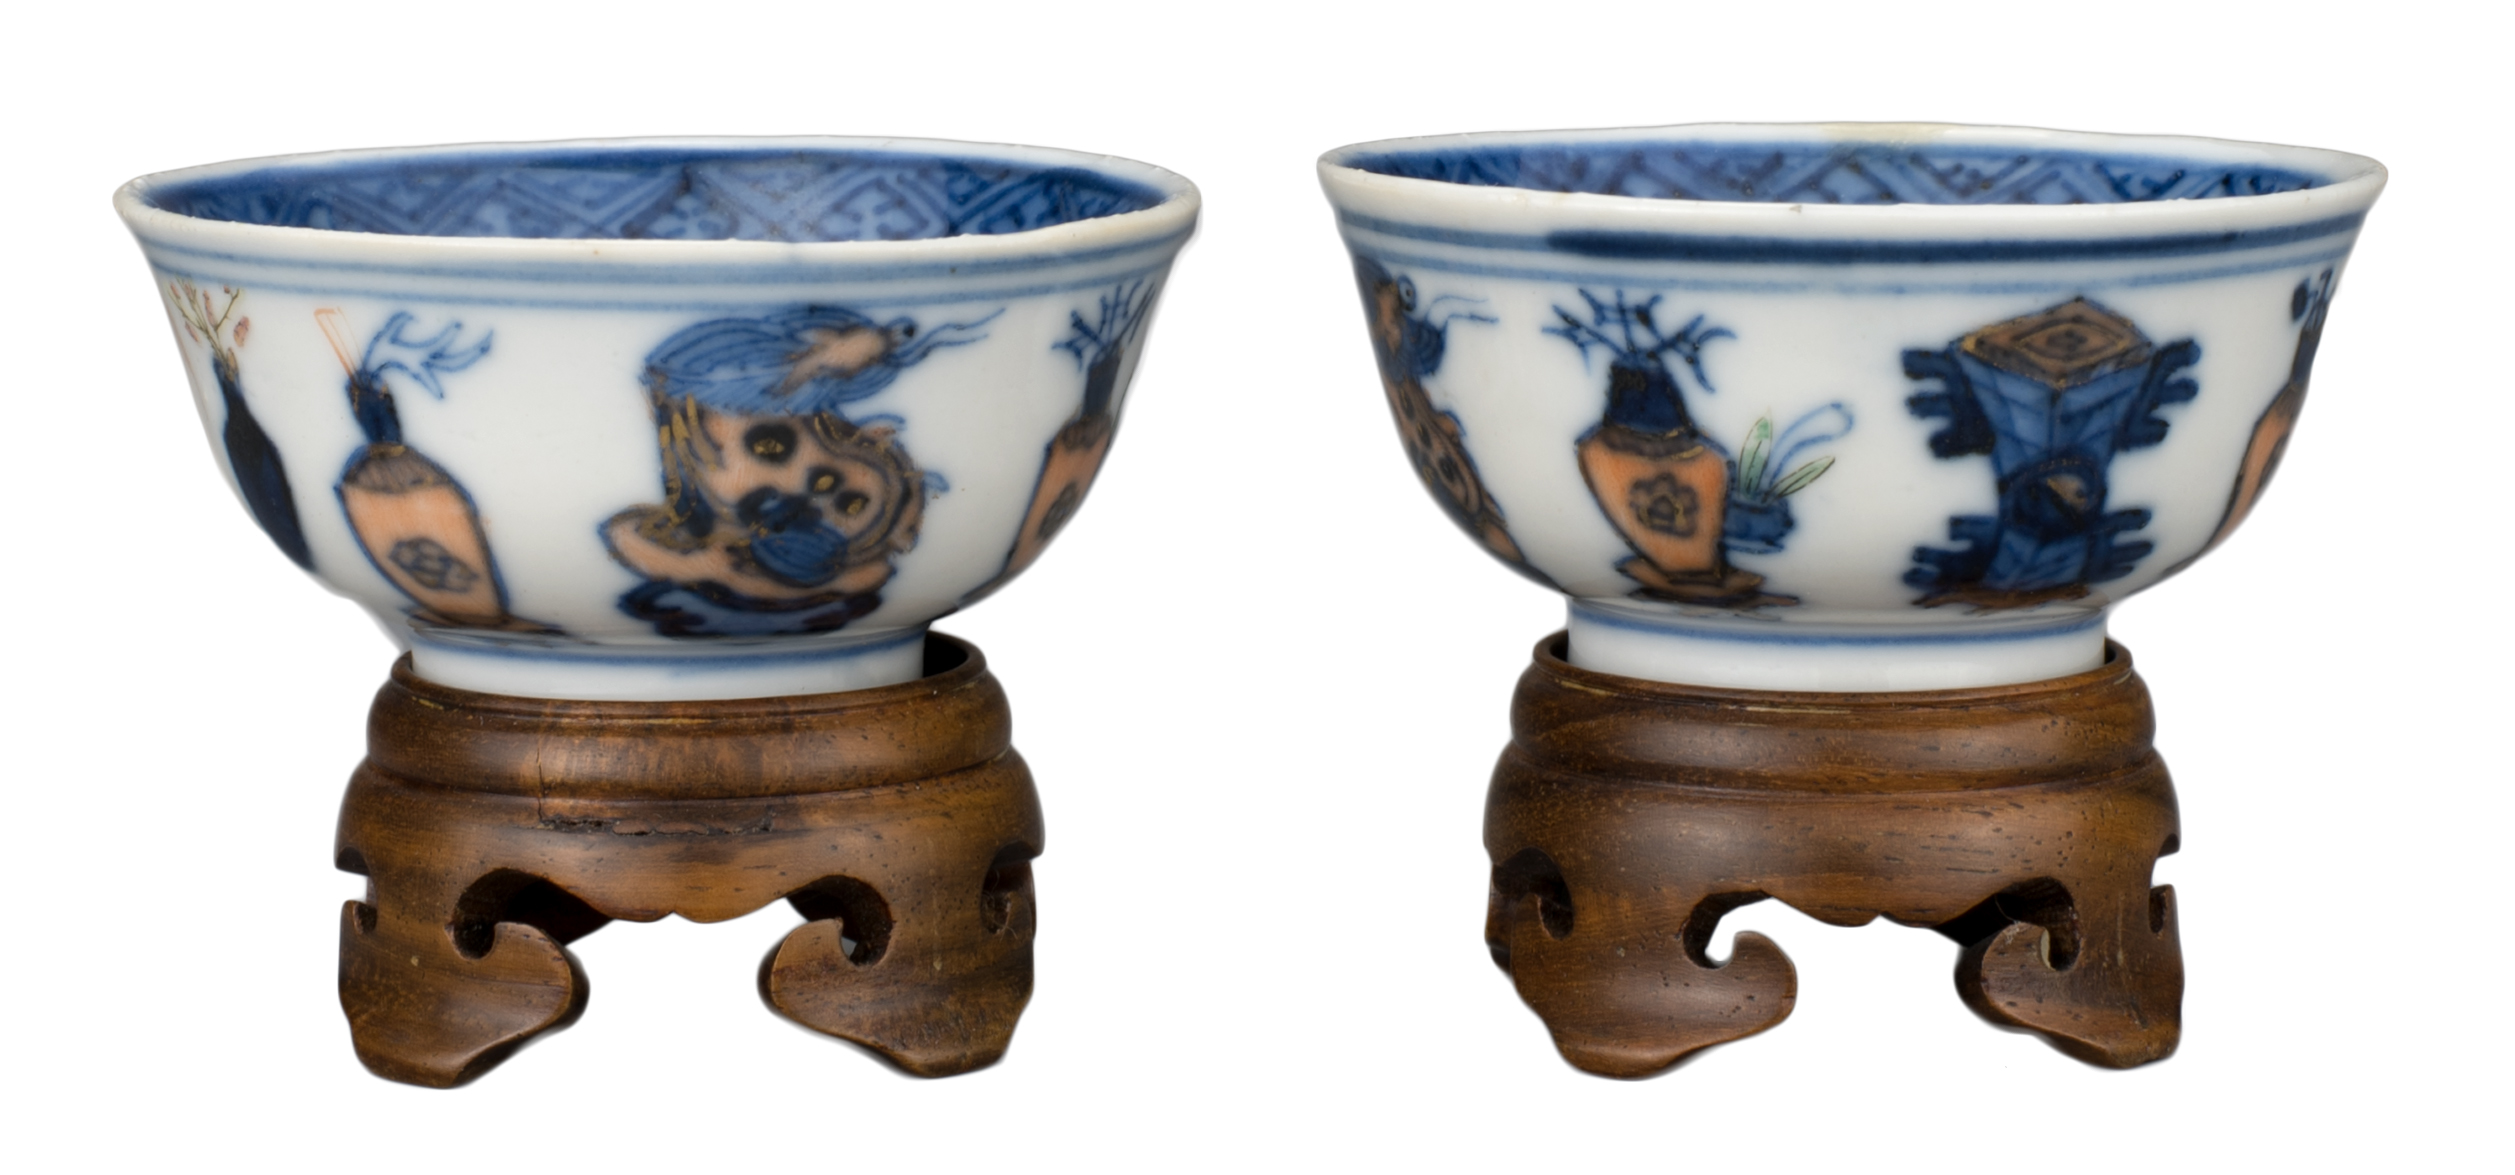 PAIR OF CHINESE PORCELAIN WINE CUPS, GUANGXU MARK AND PERIOD, 19th CENTURY